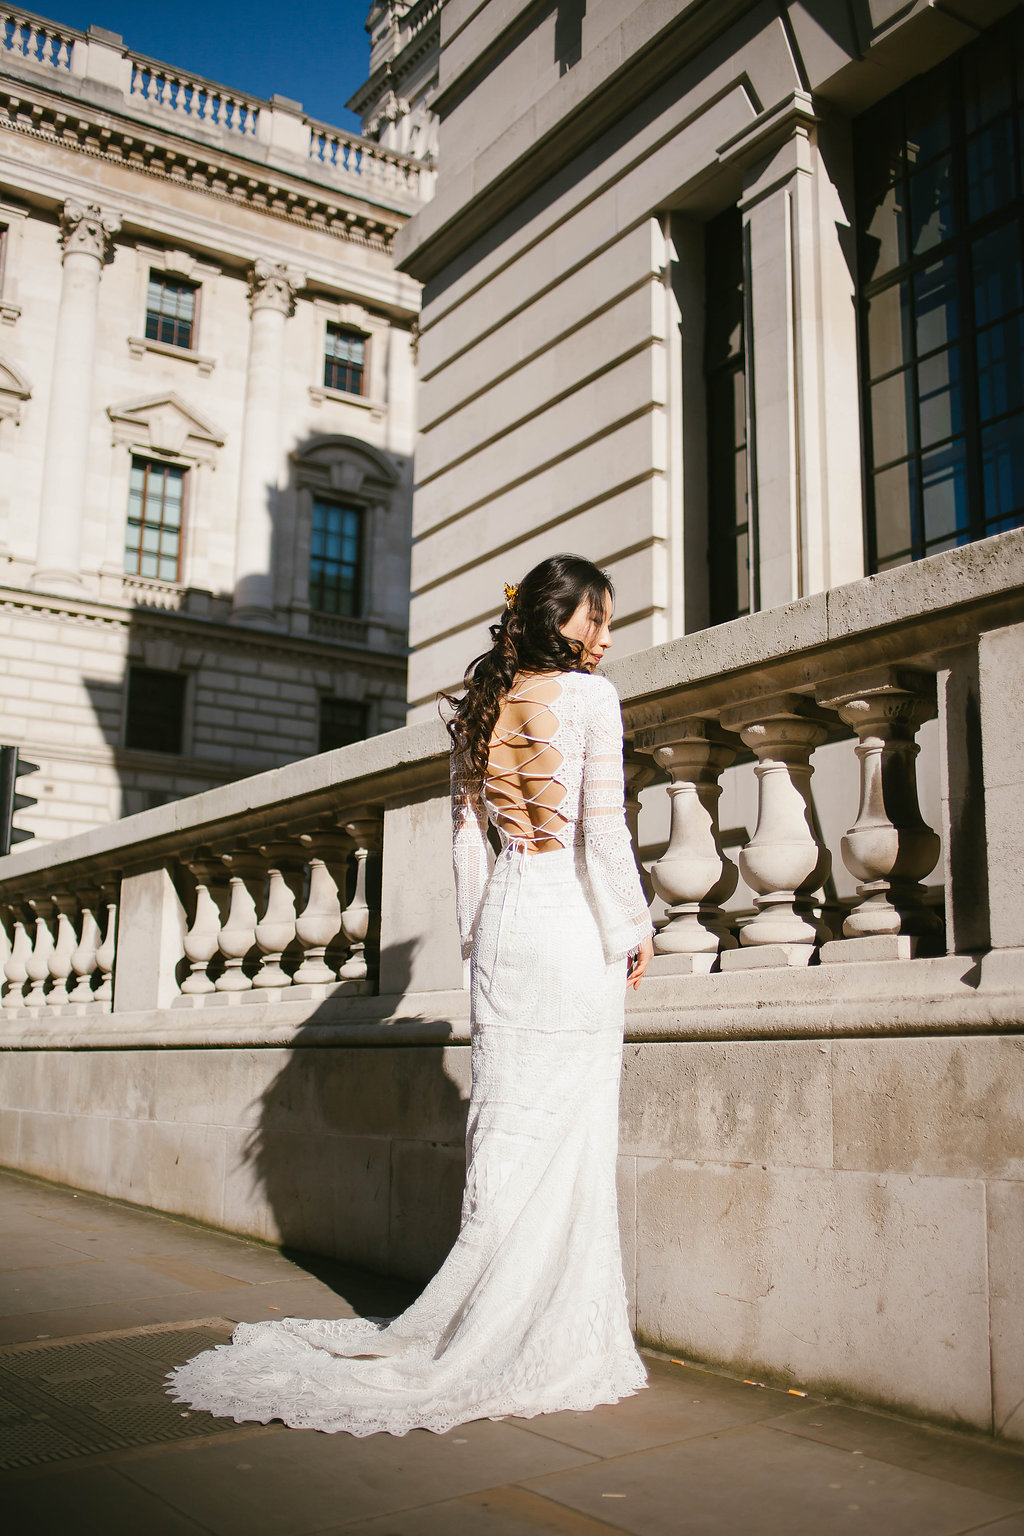 Nina Pang Photography - City Bride - London wedding - City wedding - Chinese wedding 2